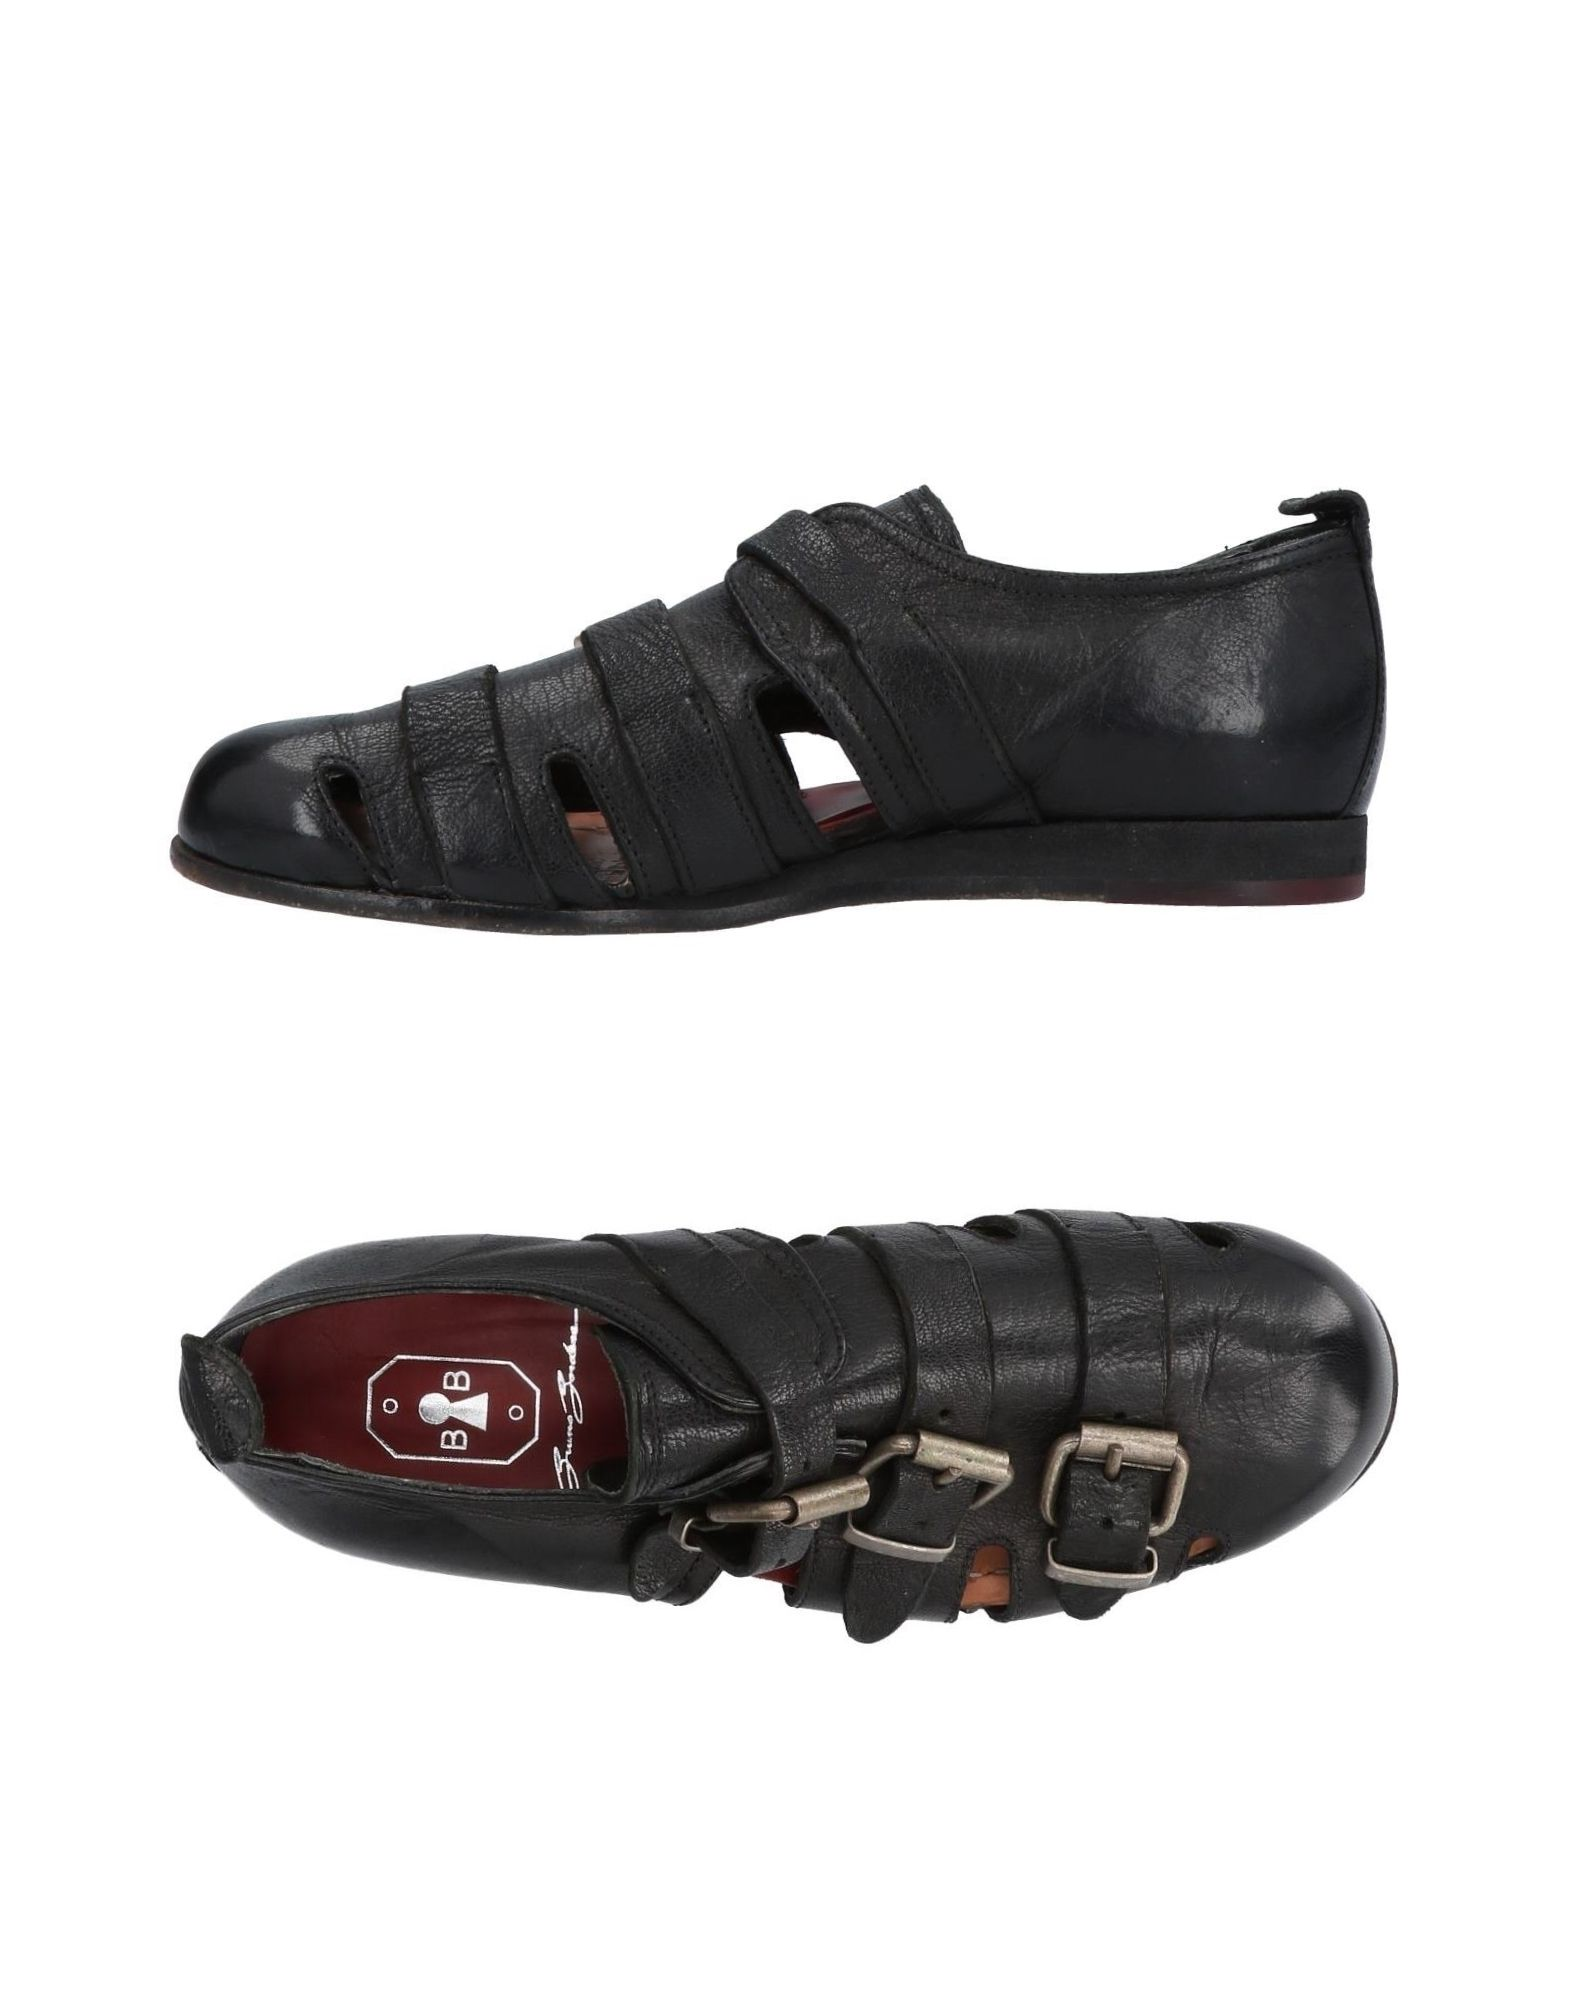 BRUNO BORDESE Loafers in Black